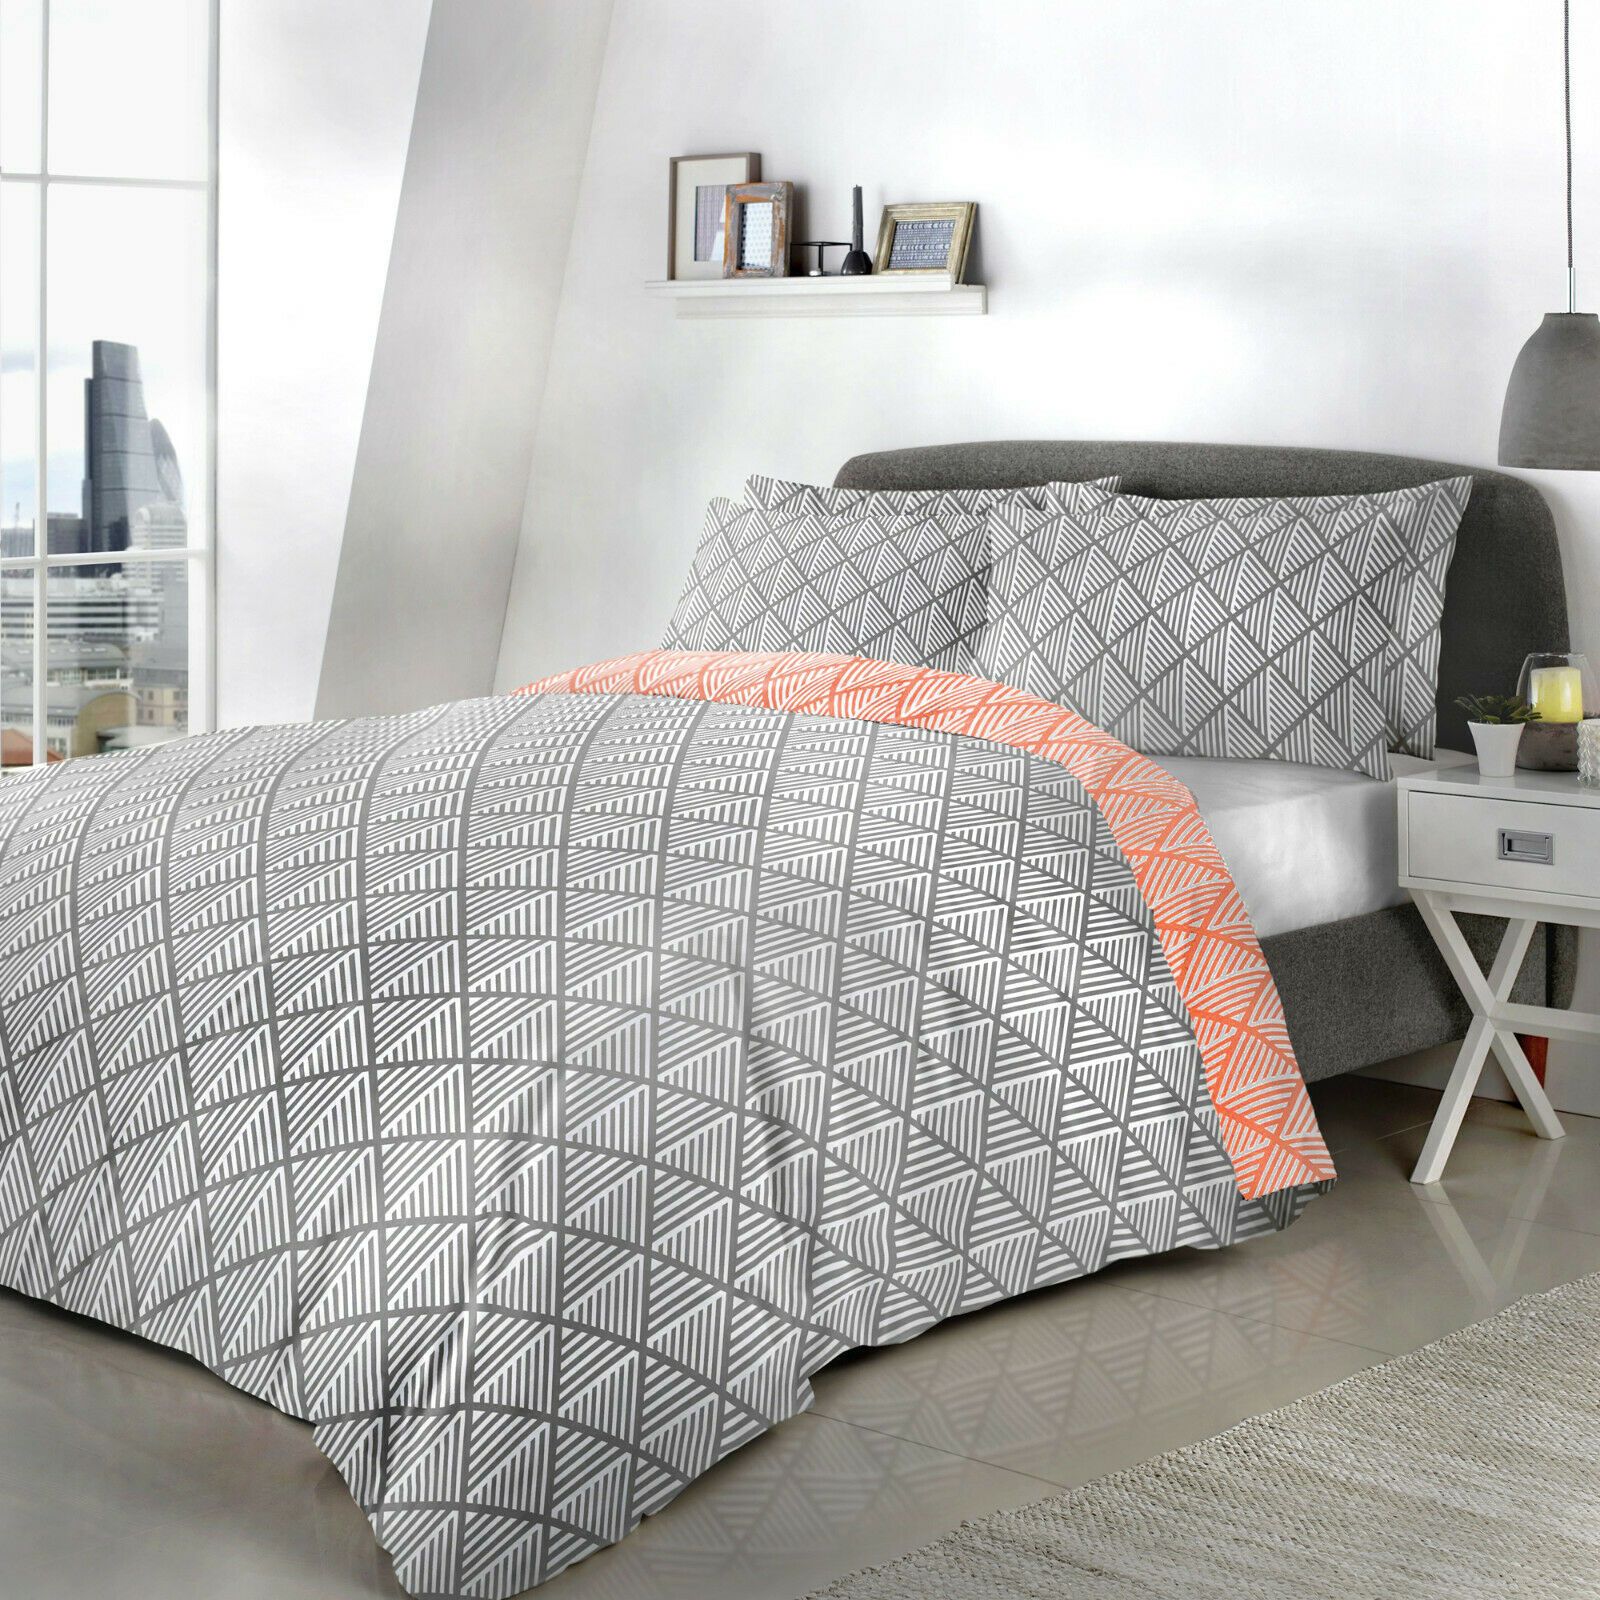 DOUBLE Reversible Easy care Bedding Pink Grey Geometric Duvet Cover